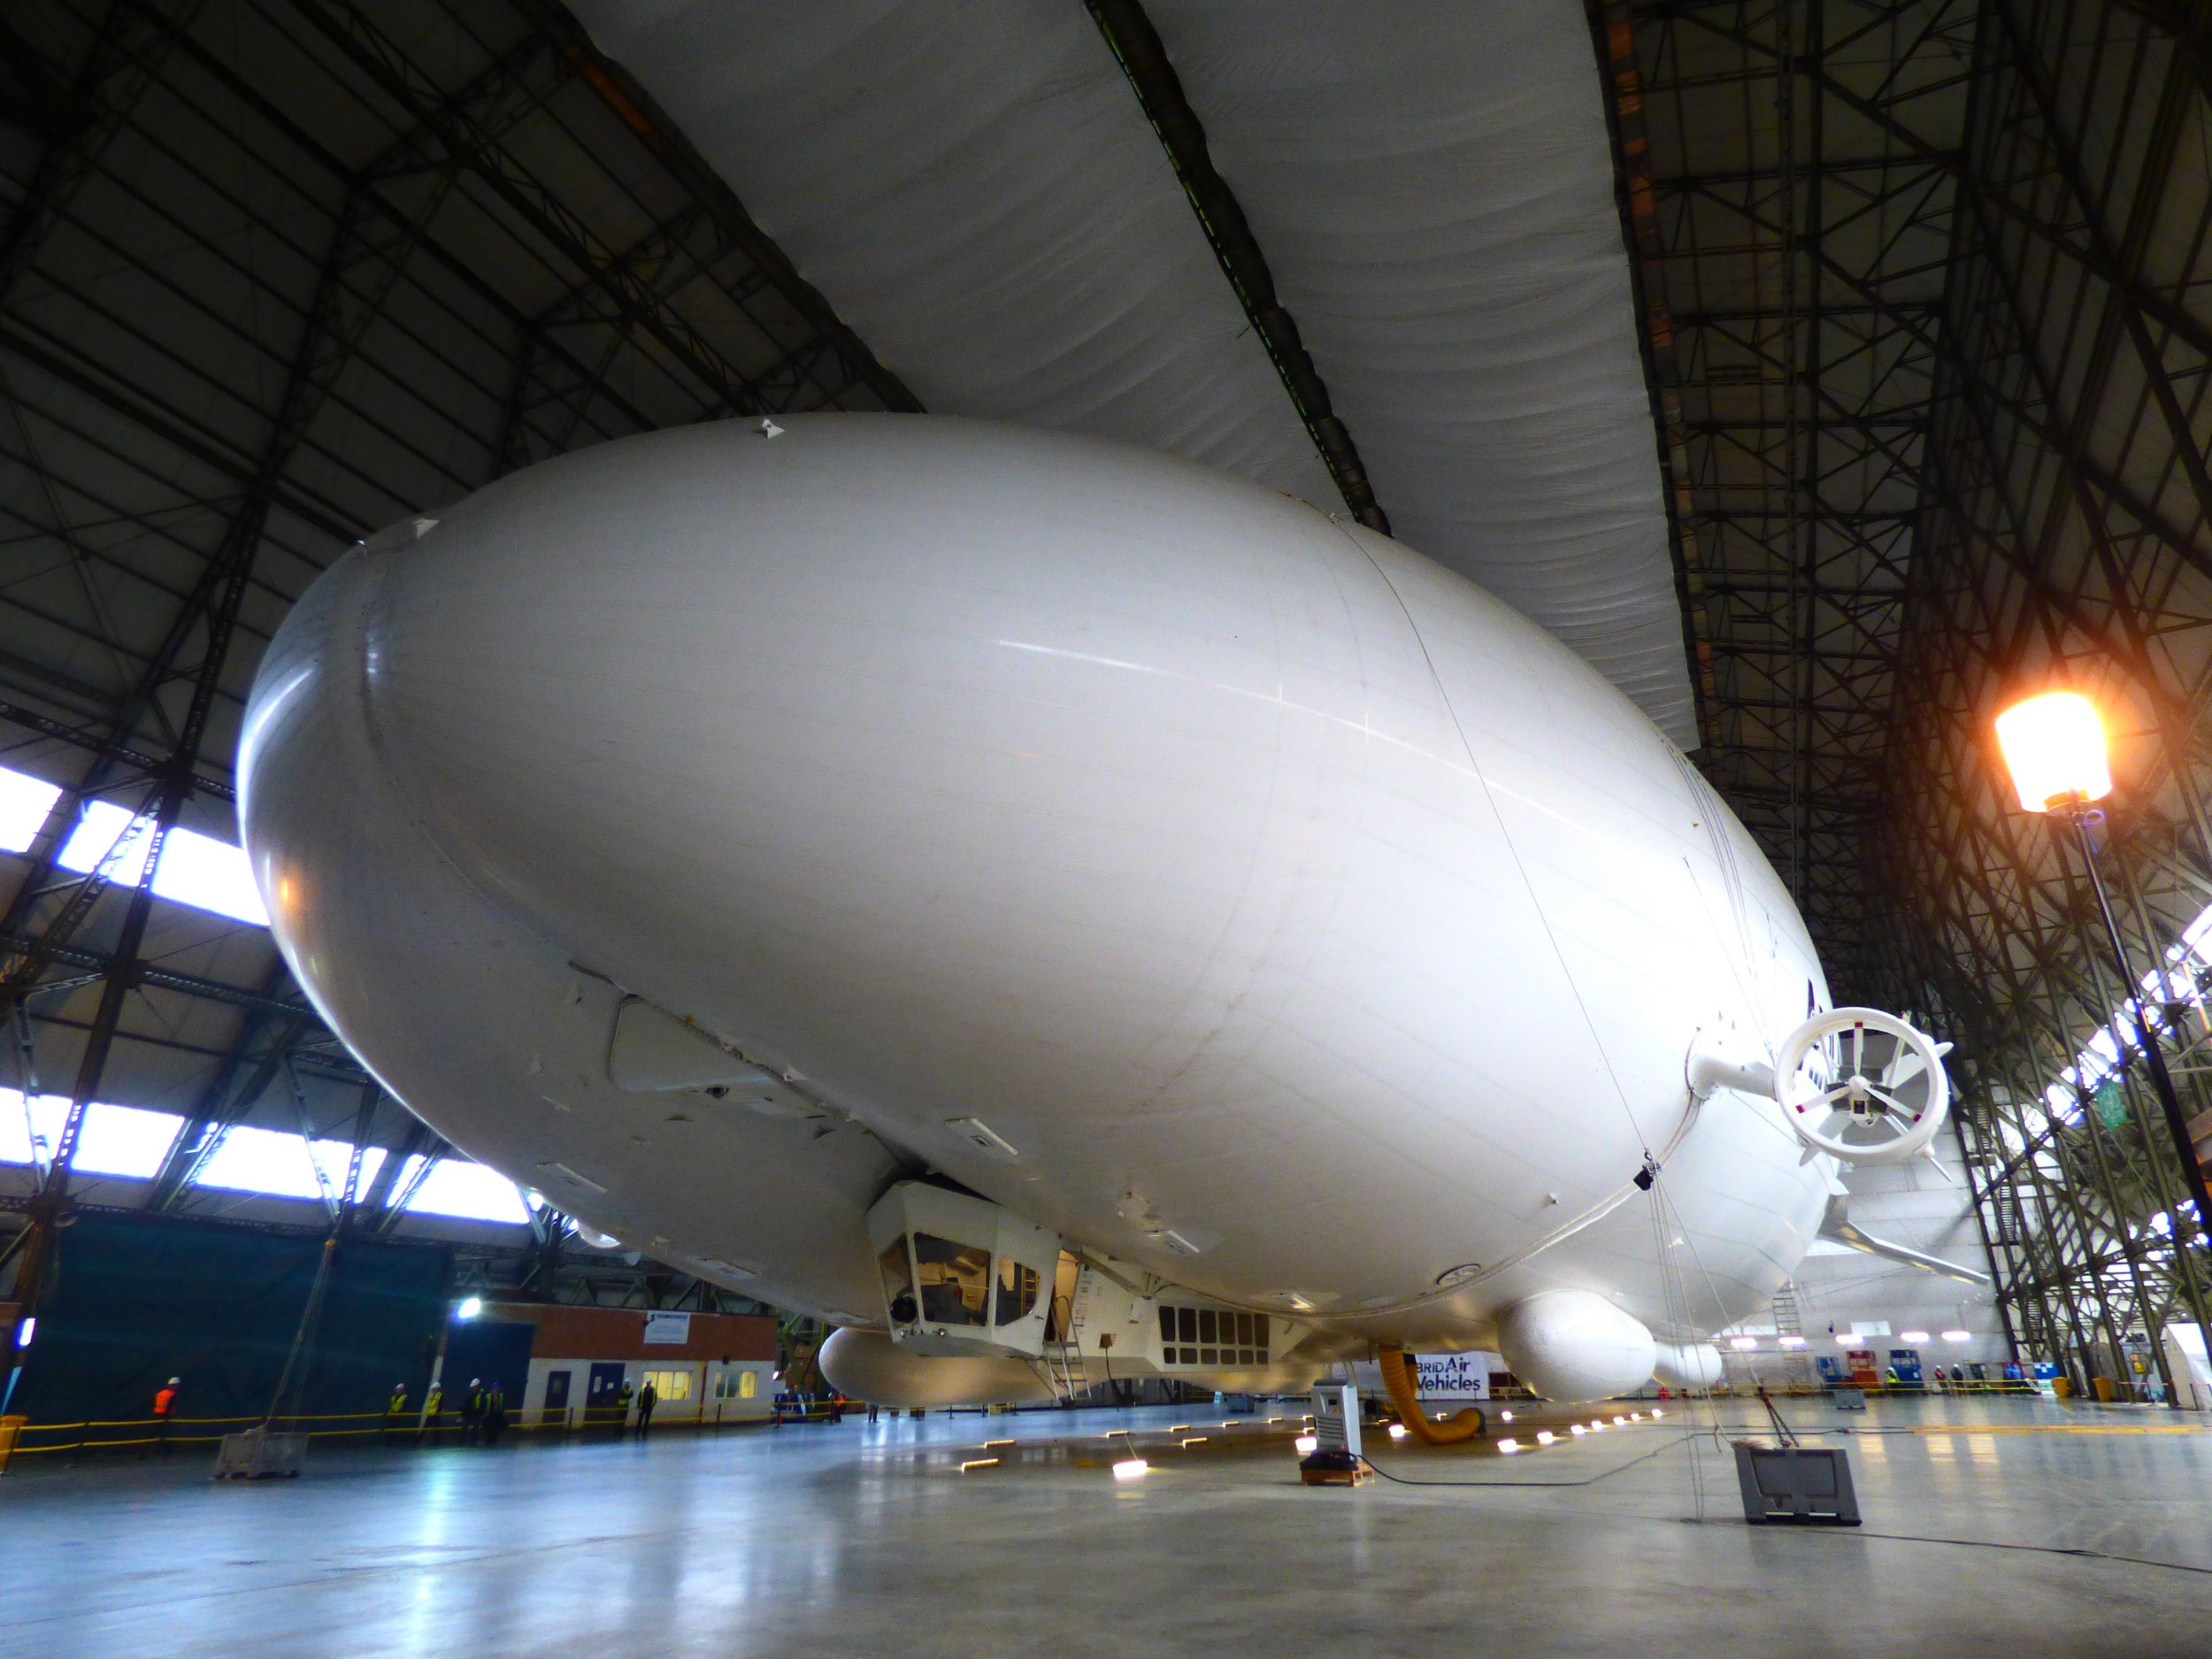 """PICTURE SHOWS: Archive Airlander test flight picture ... STORY COPY: The World???s Largest Aircraft will have a luxurious interior. Hybrid Air Vehicles Limited and Design Q unveiled the Airlander 10 passenger cabin on Wednesday (18 July), showcasing what???s possible in luxury expeditionary tourism in their 'Rethink the Skies' campaign. HAV say: """"Airlander 10???s remarkable passenger cabin opens up new possibilities by approaching air travel from a different perspective. Passengers on Airlander will have luxurious private en-suite bedrooms and will be able to enjoy horizon-to-horizon views in the aircraft???s extensive Infinity Lounge. The Altitude Bar will offer drinks with the ultimate view, while 18 guests can enjoy fine dining in the skies."""" Stephen McGlennan, CEO of HAV, comments that Airlander 10 is changing the way we think about air travel. ???Airlander challenges people to rethink the skies ??? that???s the driving force behind everything we do,??? he says. ???Air travel has become very much about getting from A to B as quickly as possible. What we???re offering is a way of making the journey a joy.??? Airlander 10 can take off and land from virtually any flat surface, eliminating the need for traditional infrastructures like ports or airports. This opens up opportunities for luxury expeditions to places existing transport can???t get to and offers the ultimate in transformative, experiential travel. The new cabin design takes full advantage of Airlander???s unique characteristics to create an environment unlike anything available in aviation today. Design Q???s CEO Howard Guy adds: ???We love doing different things. Our fantastic team of young designers relish the opportunity to do something no one???s done before, to imagine a new concept and then to get into the detailed design of what this space will be.??? Airlander 10???s interior is unusually spacious ??? the cabin is larger than most single-aisle aircraft, such as the A320. This space all"""